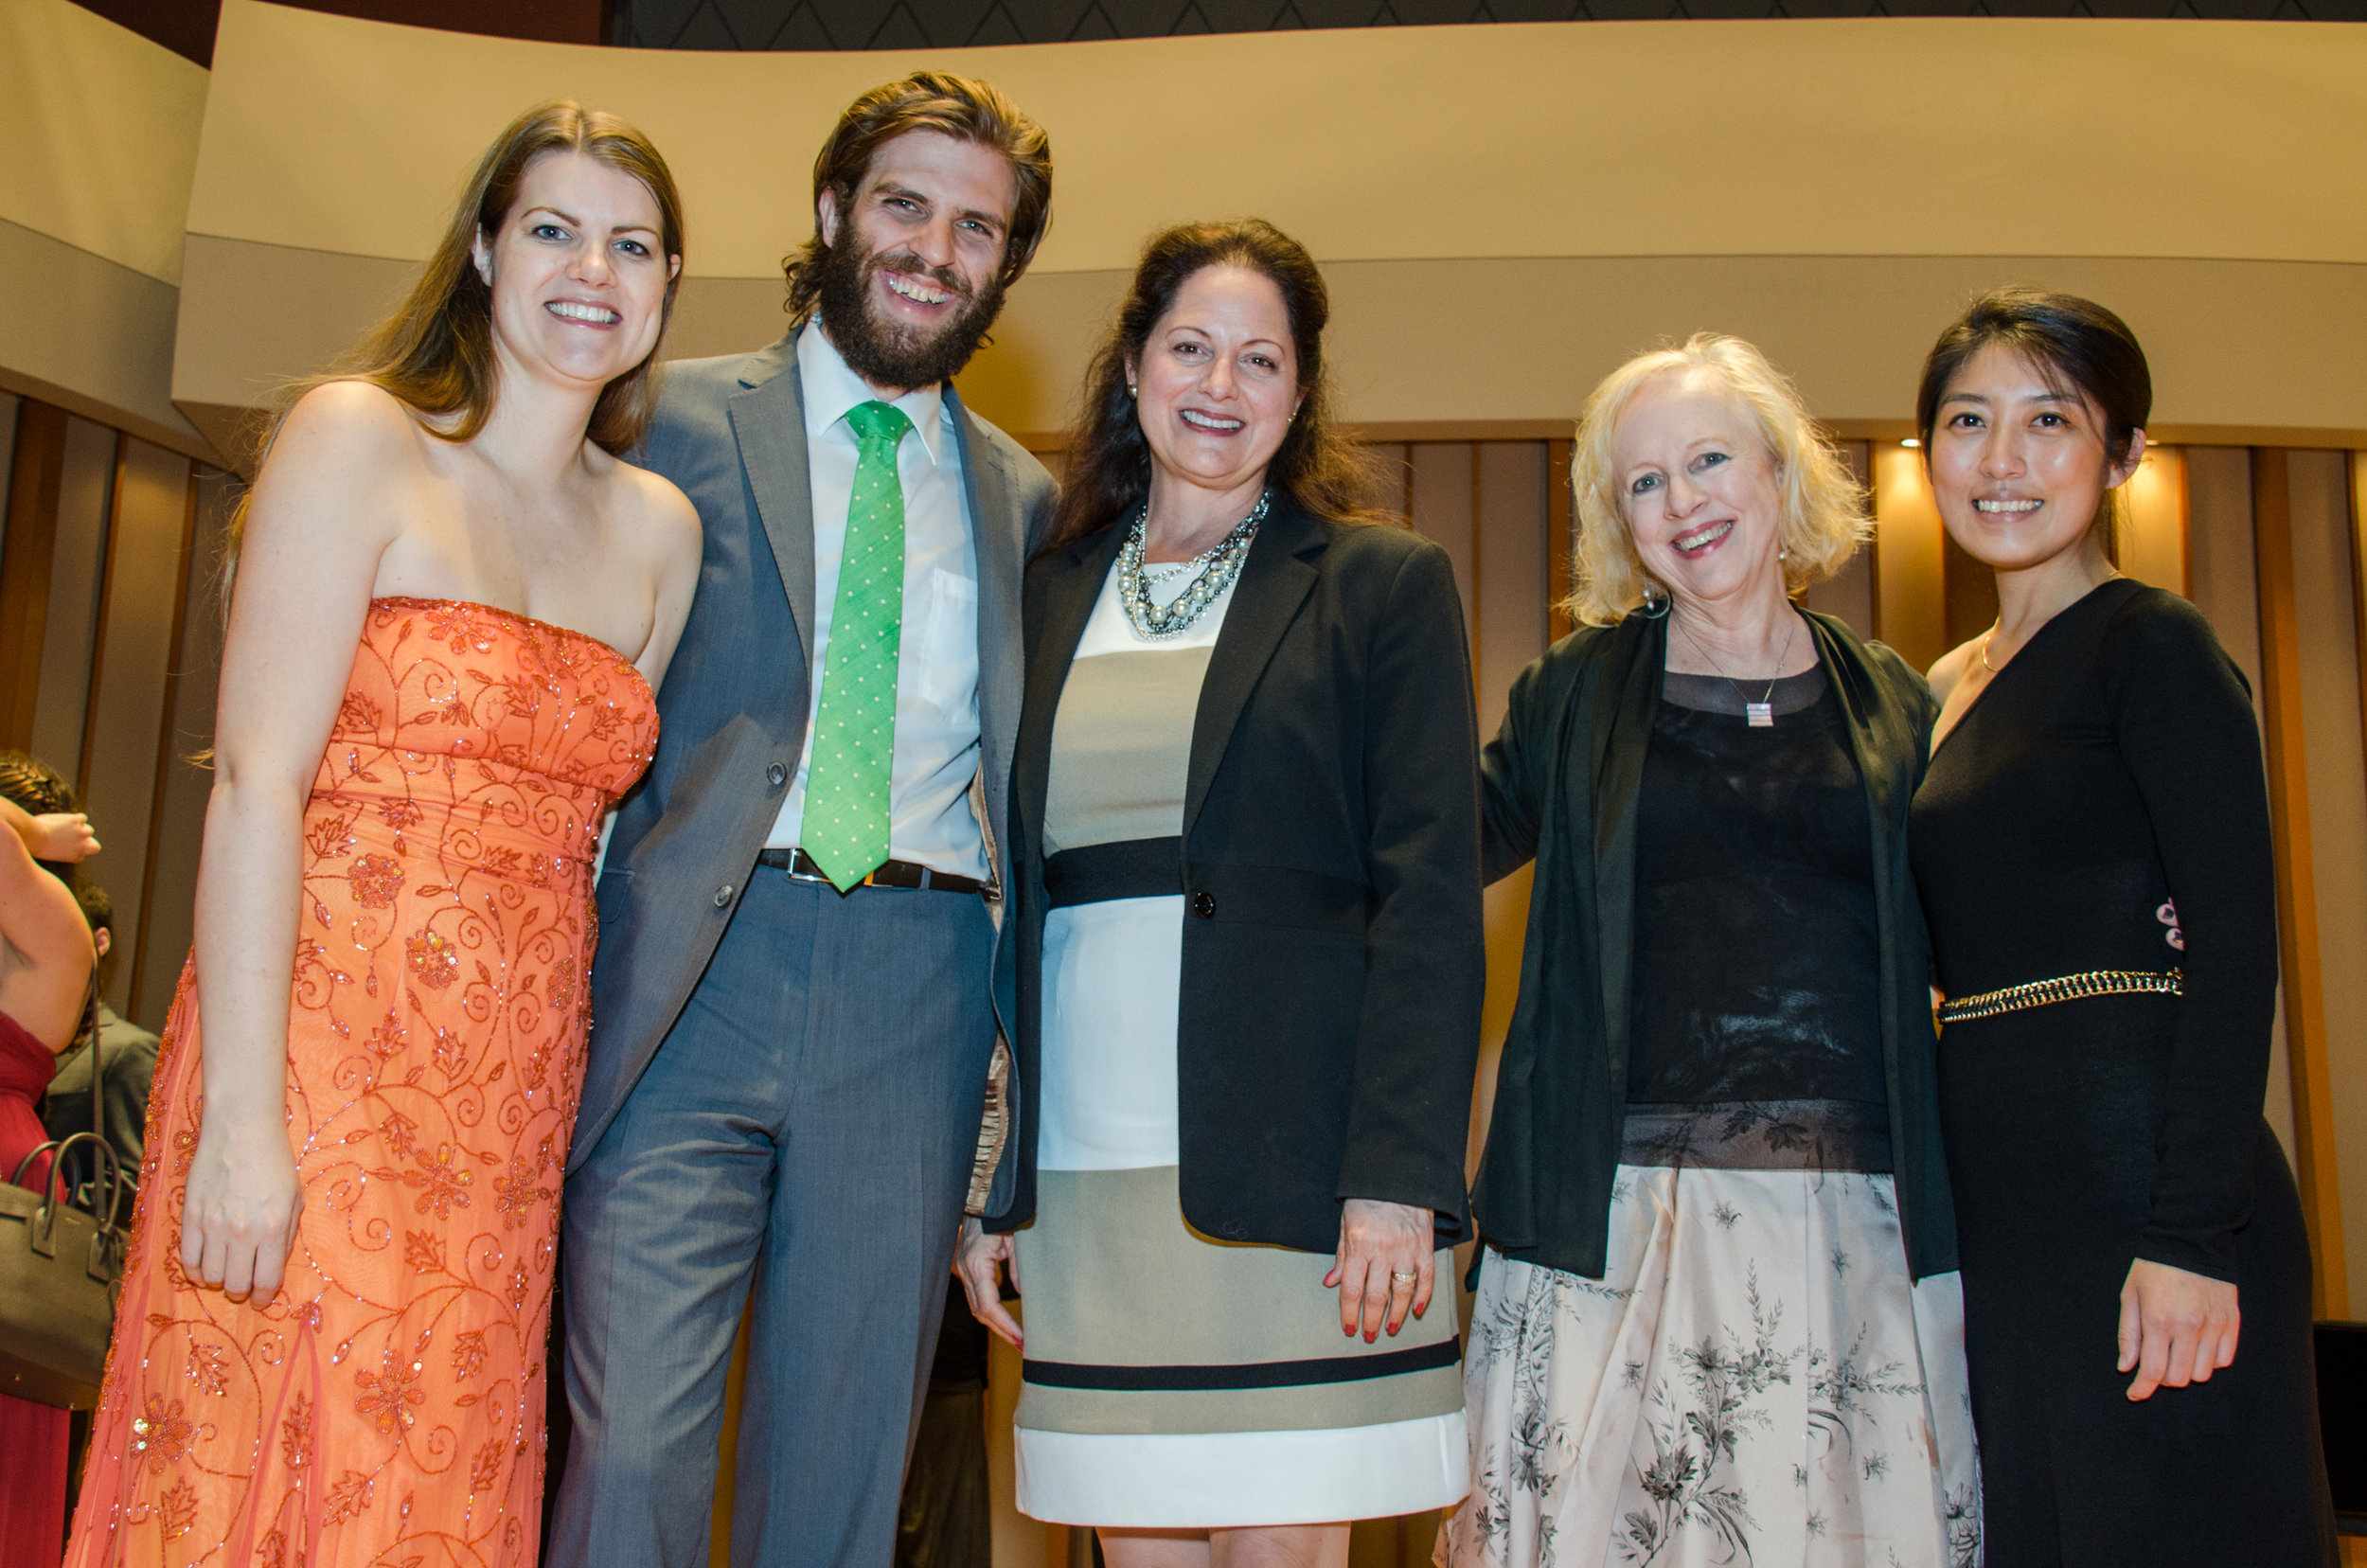 2015 pianist Gloria Kim after the performance of a world premiere commission by Anne Lebaron with (right to left) composer Anne LeBaron, Judy Cope of the Sorel Organization, and professional program singers bass-baritone Jesse Malgieri, and soprano Melanie Henley Heyn.